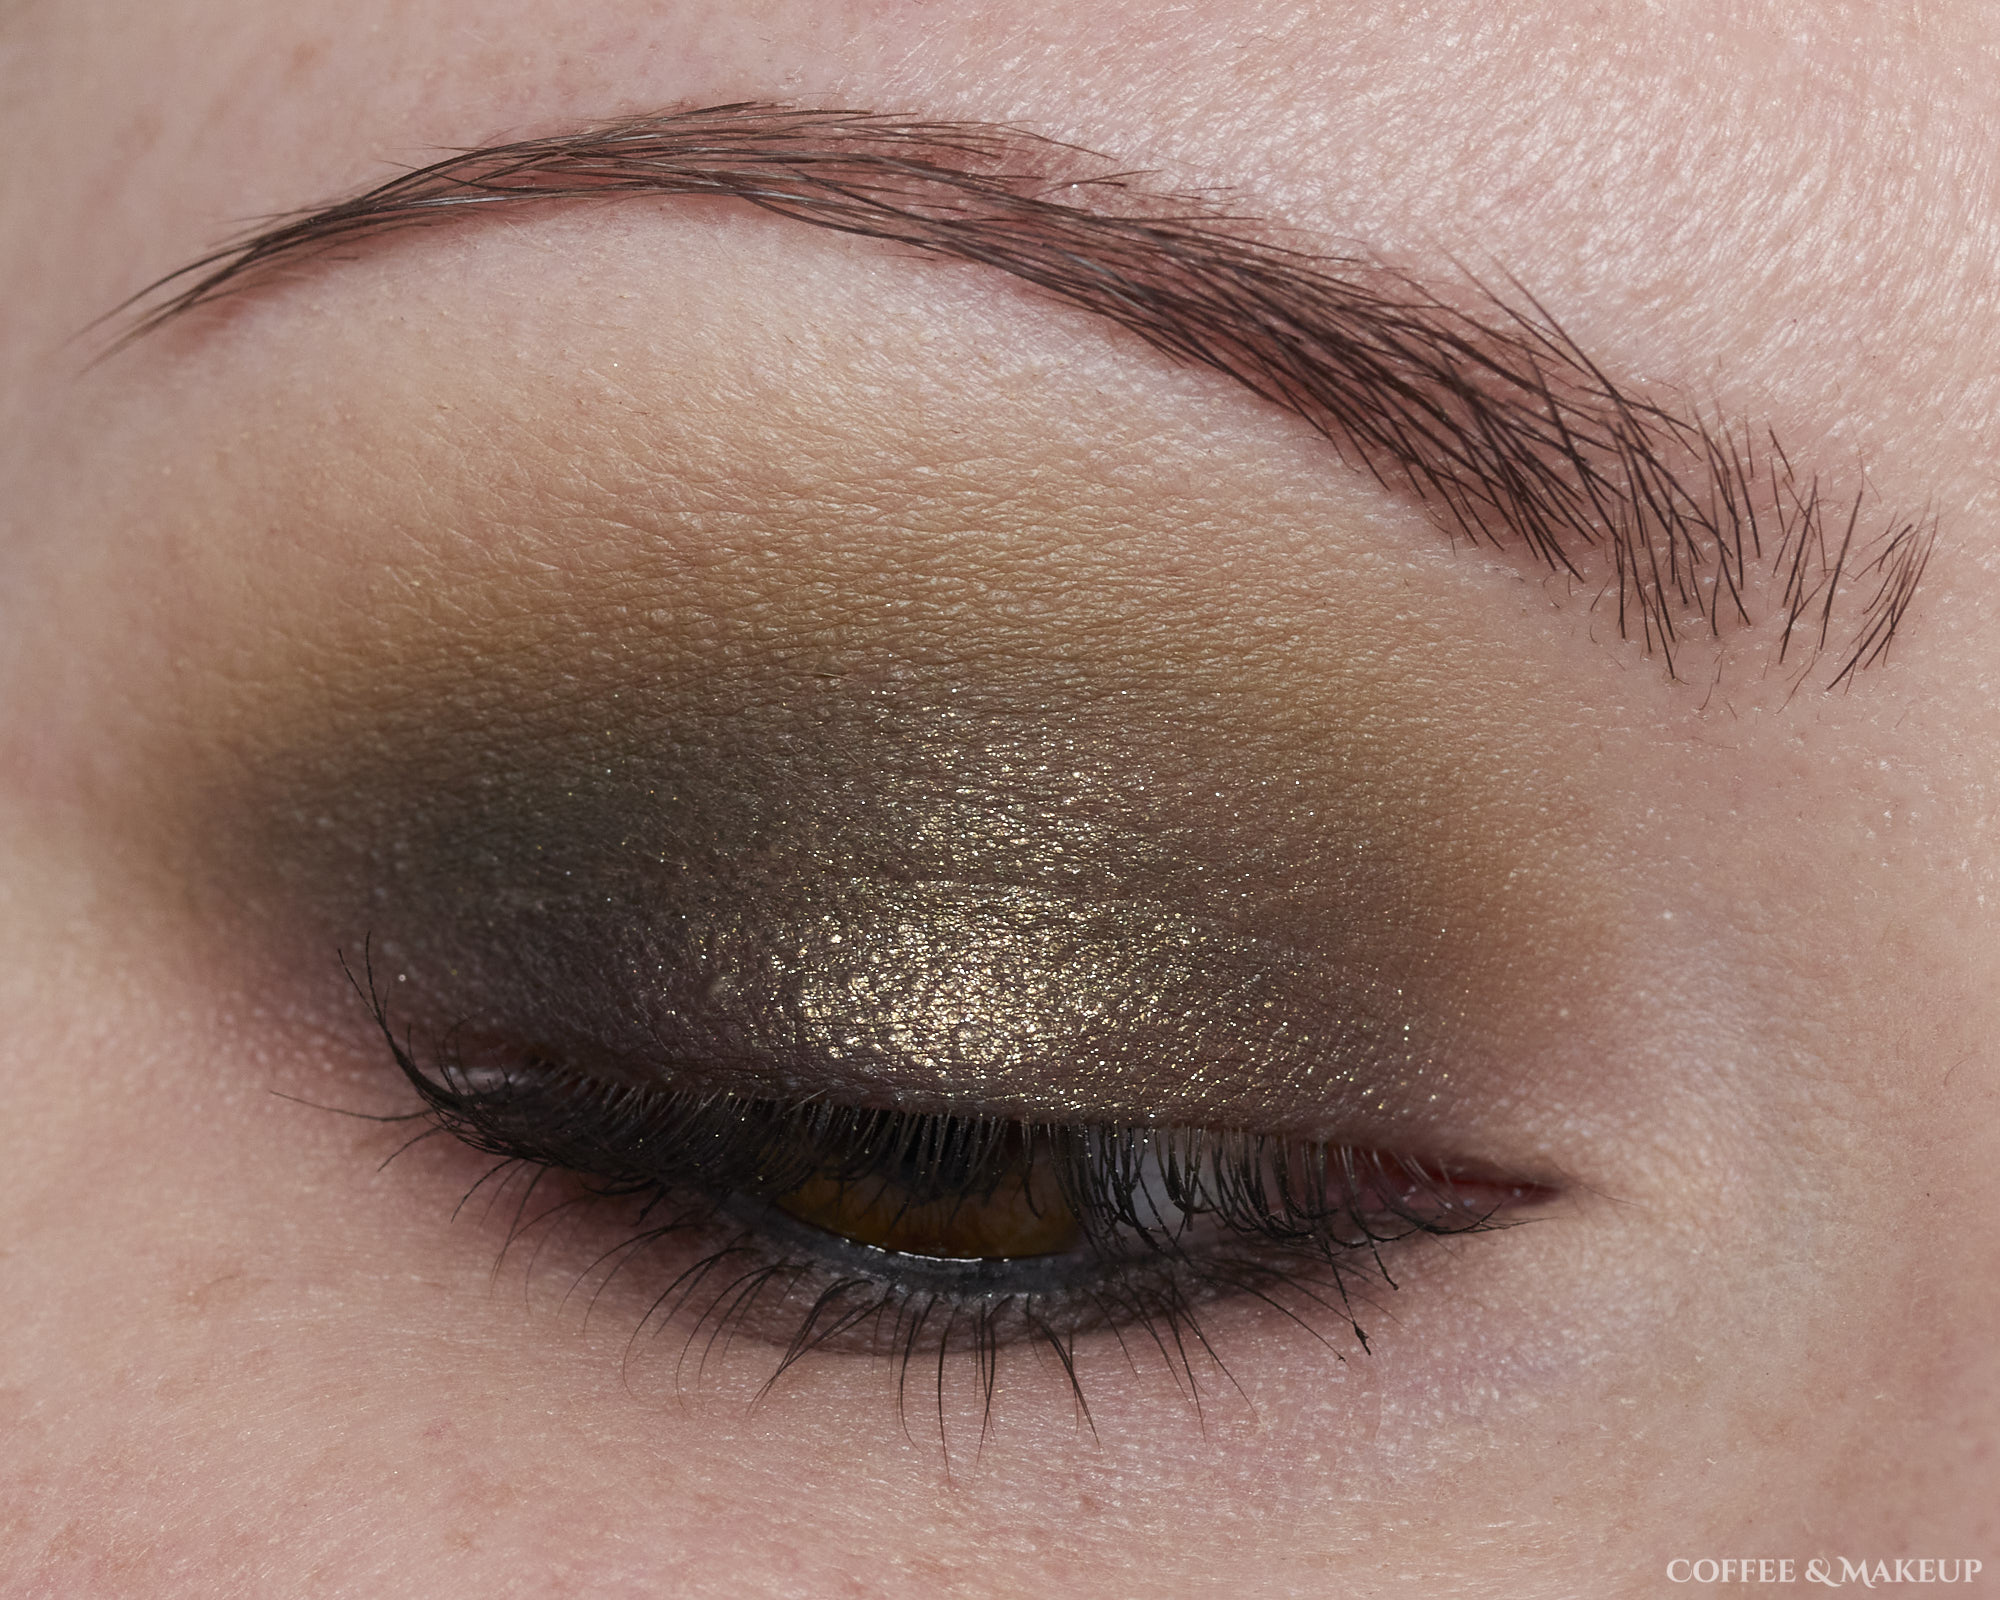 Makeup Geek Eyeshadow Look #1